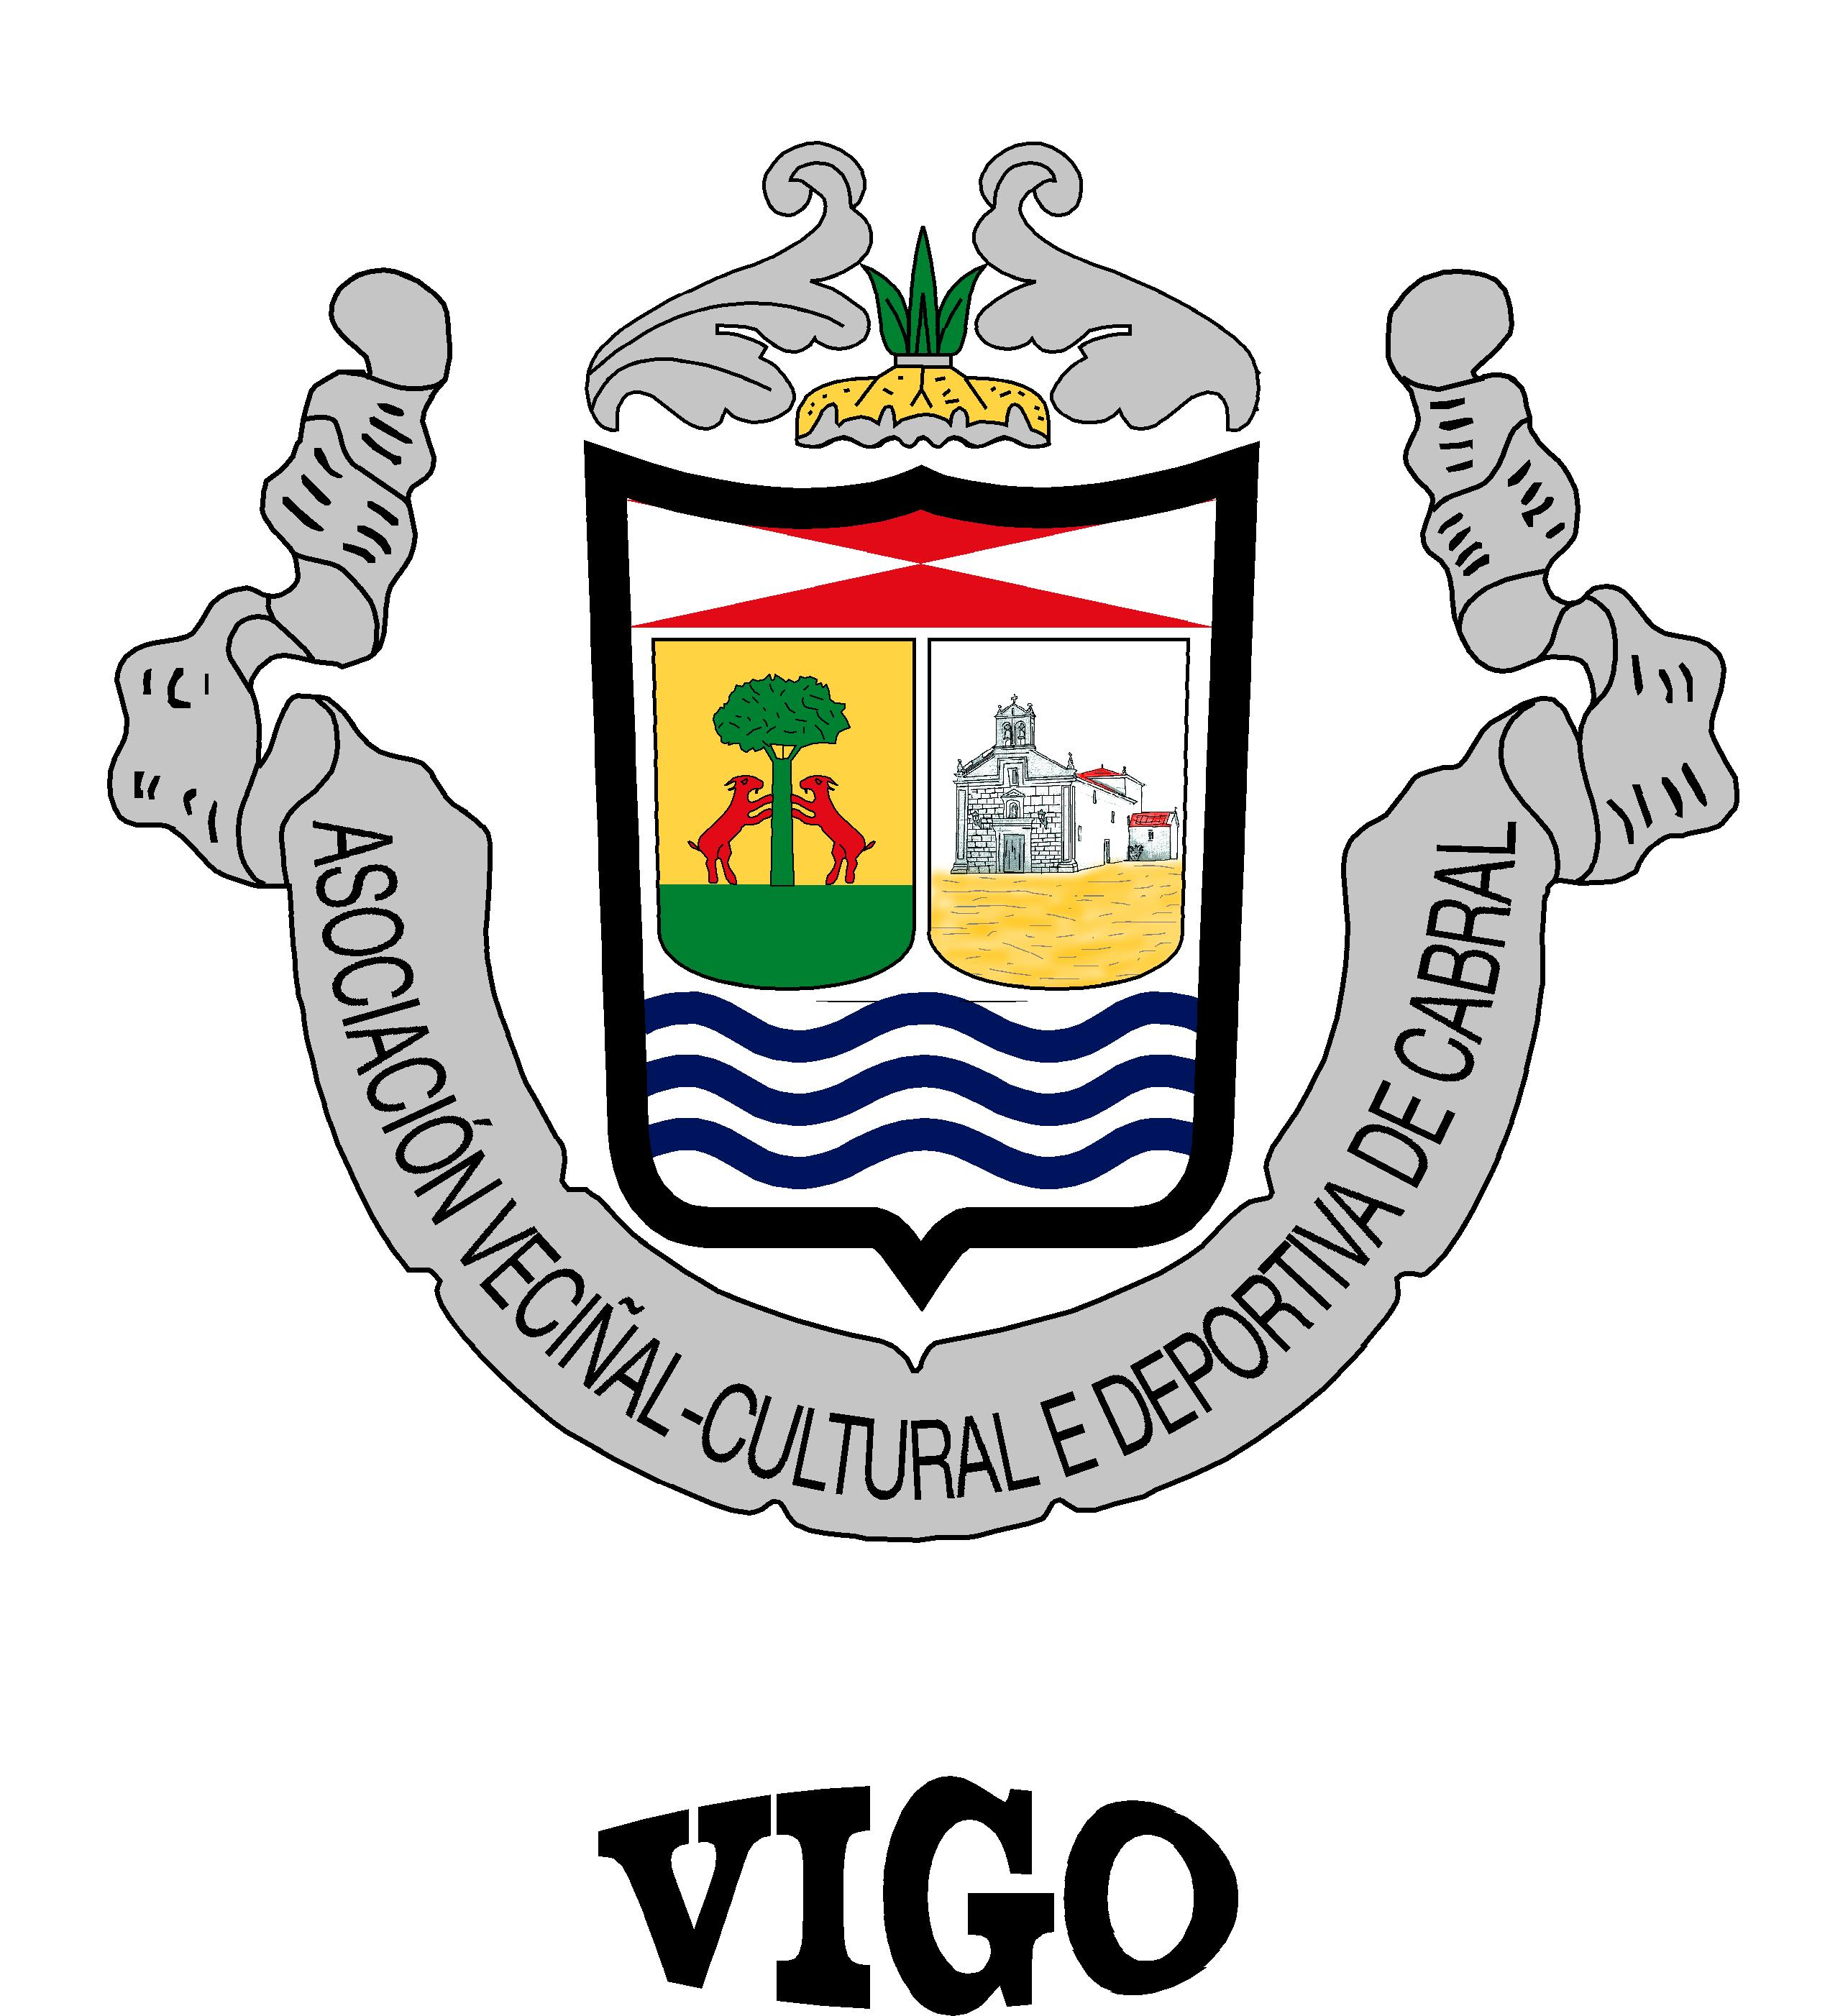 AVCD Cabral